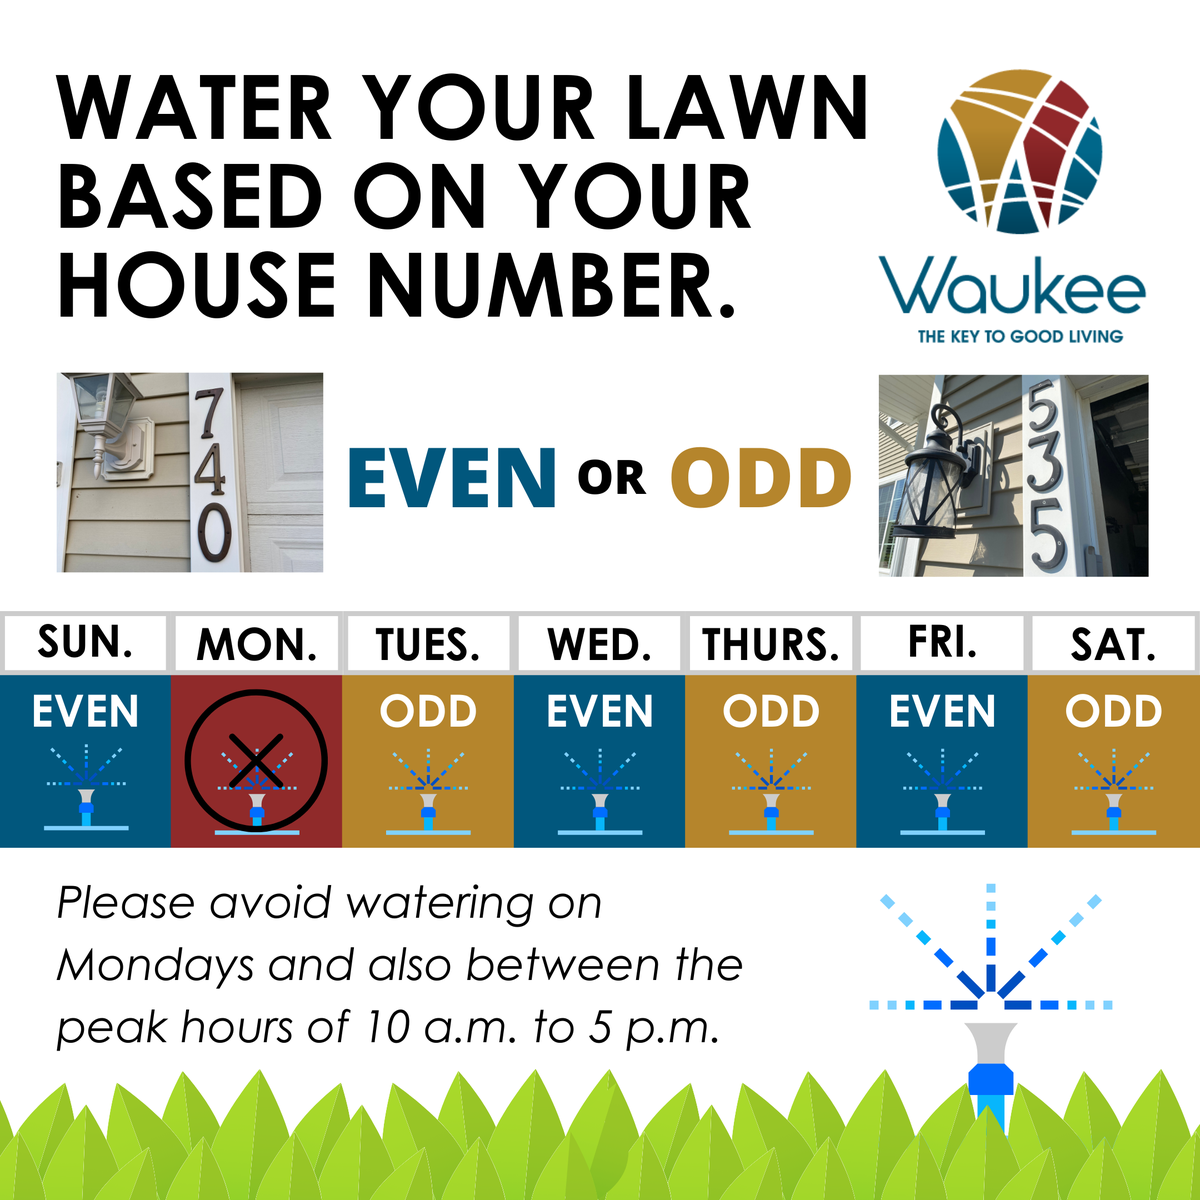 It's going to be another hot, dry weekend in Waukee. Stage II of the City Water Conservation Plan is still in effect, asking residents, businesses & other agencies to reduce lawn irrigation/outdoor water use by 50%. Follow the odd-even irrigation schedule to help reduce. Thanks!